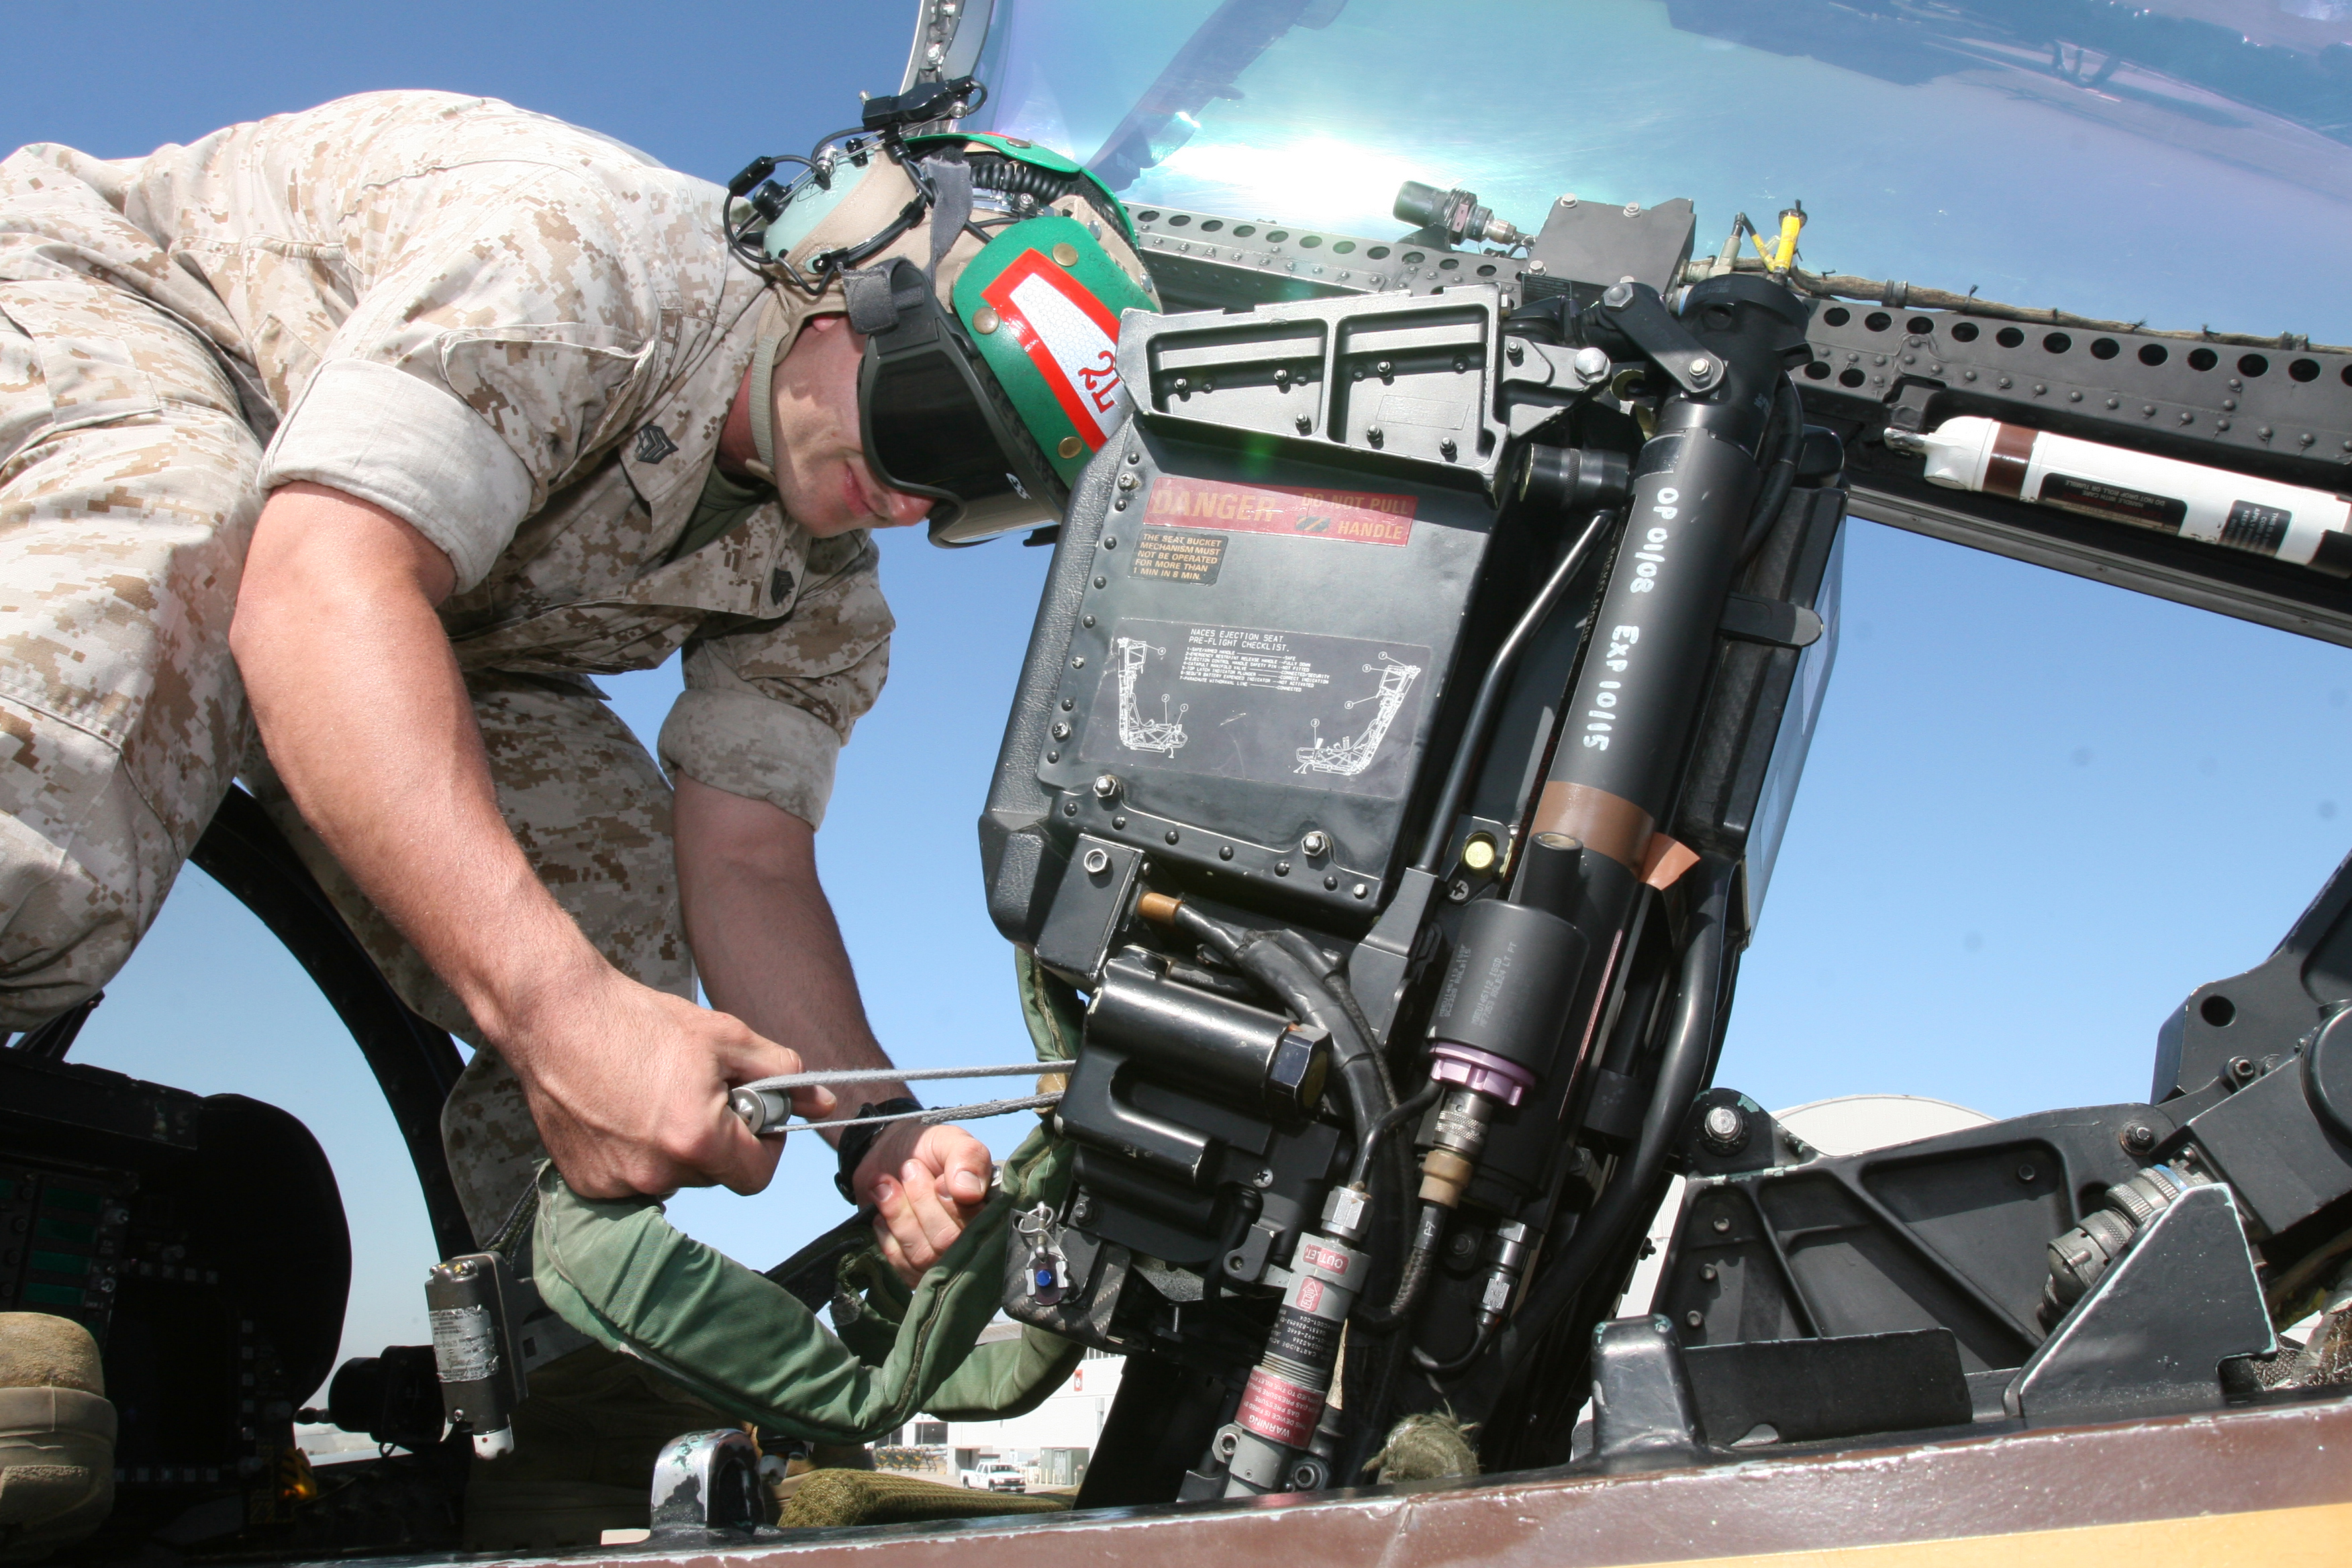 File:A United States Marine inspects an ejection seat in ...